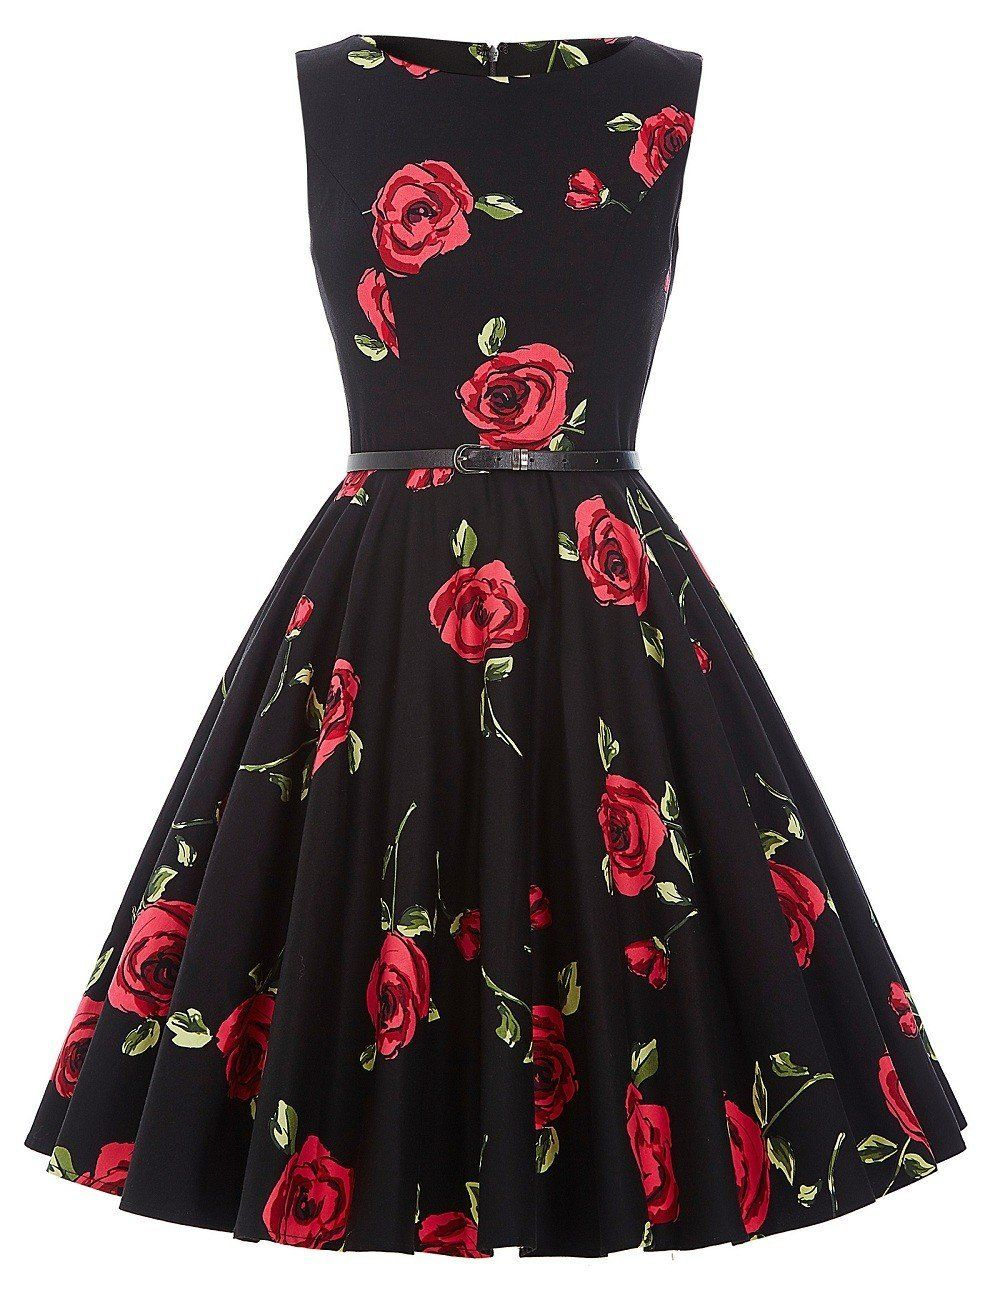 Cute vintage tea dress with belt boatneck sleeveless vintage